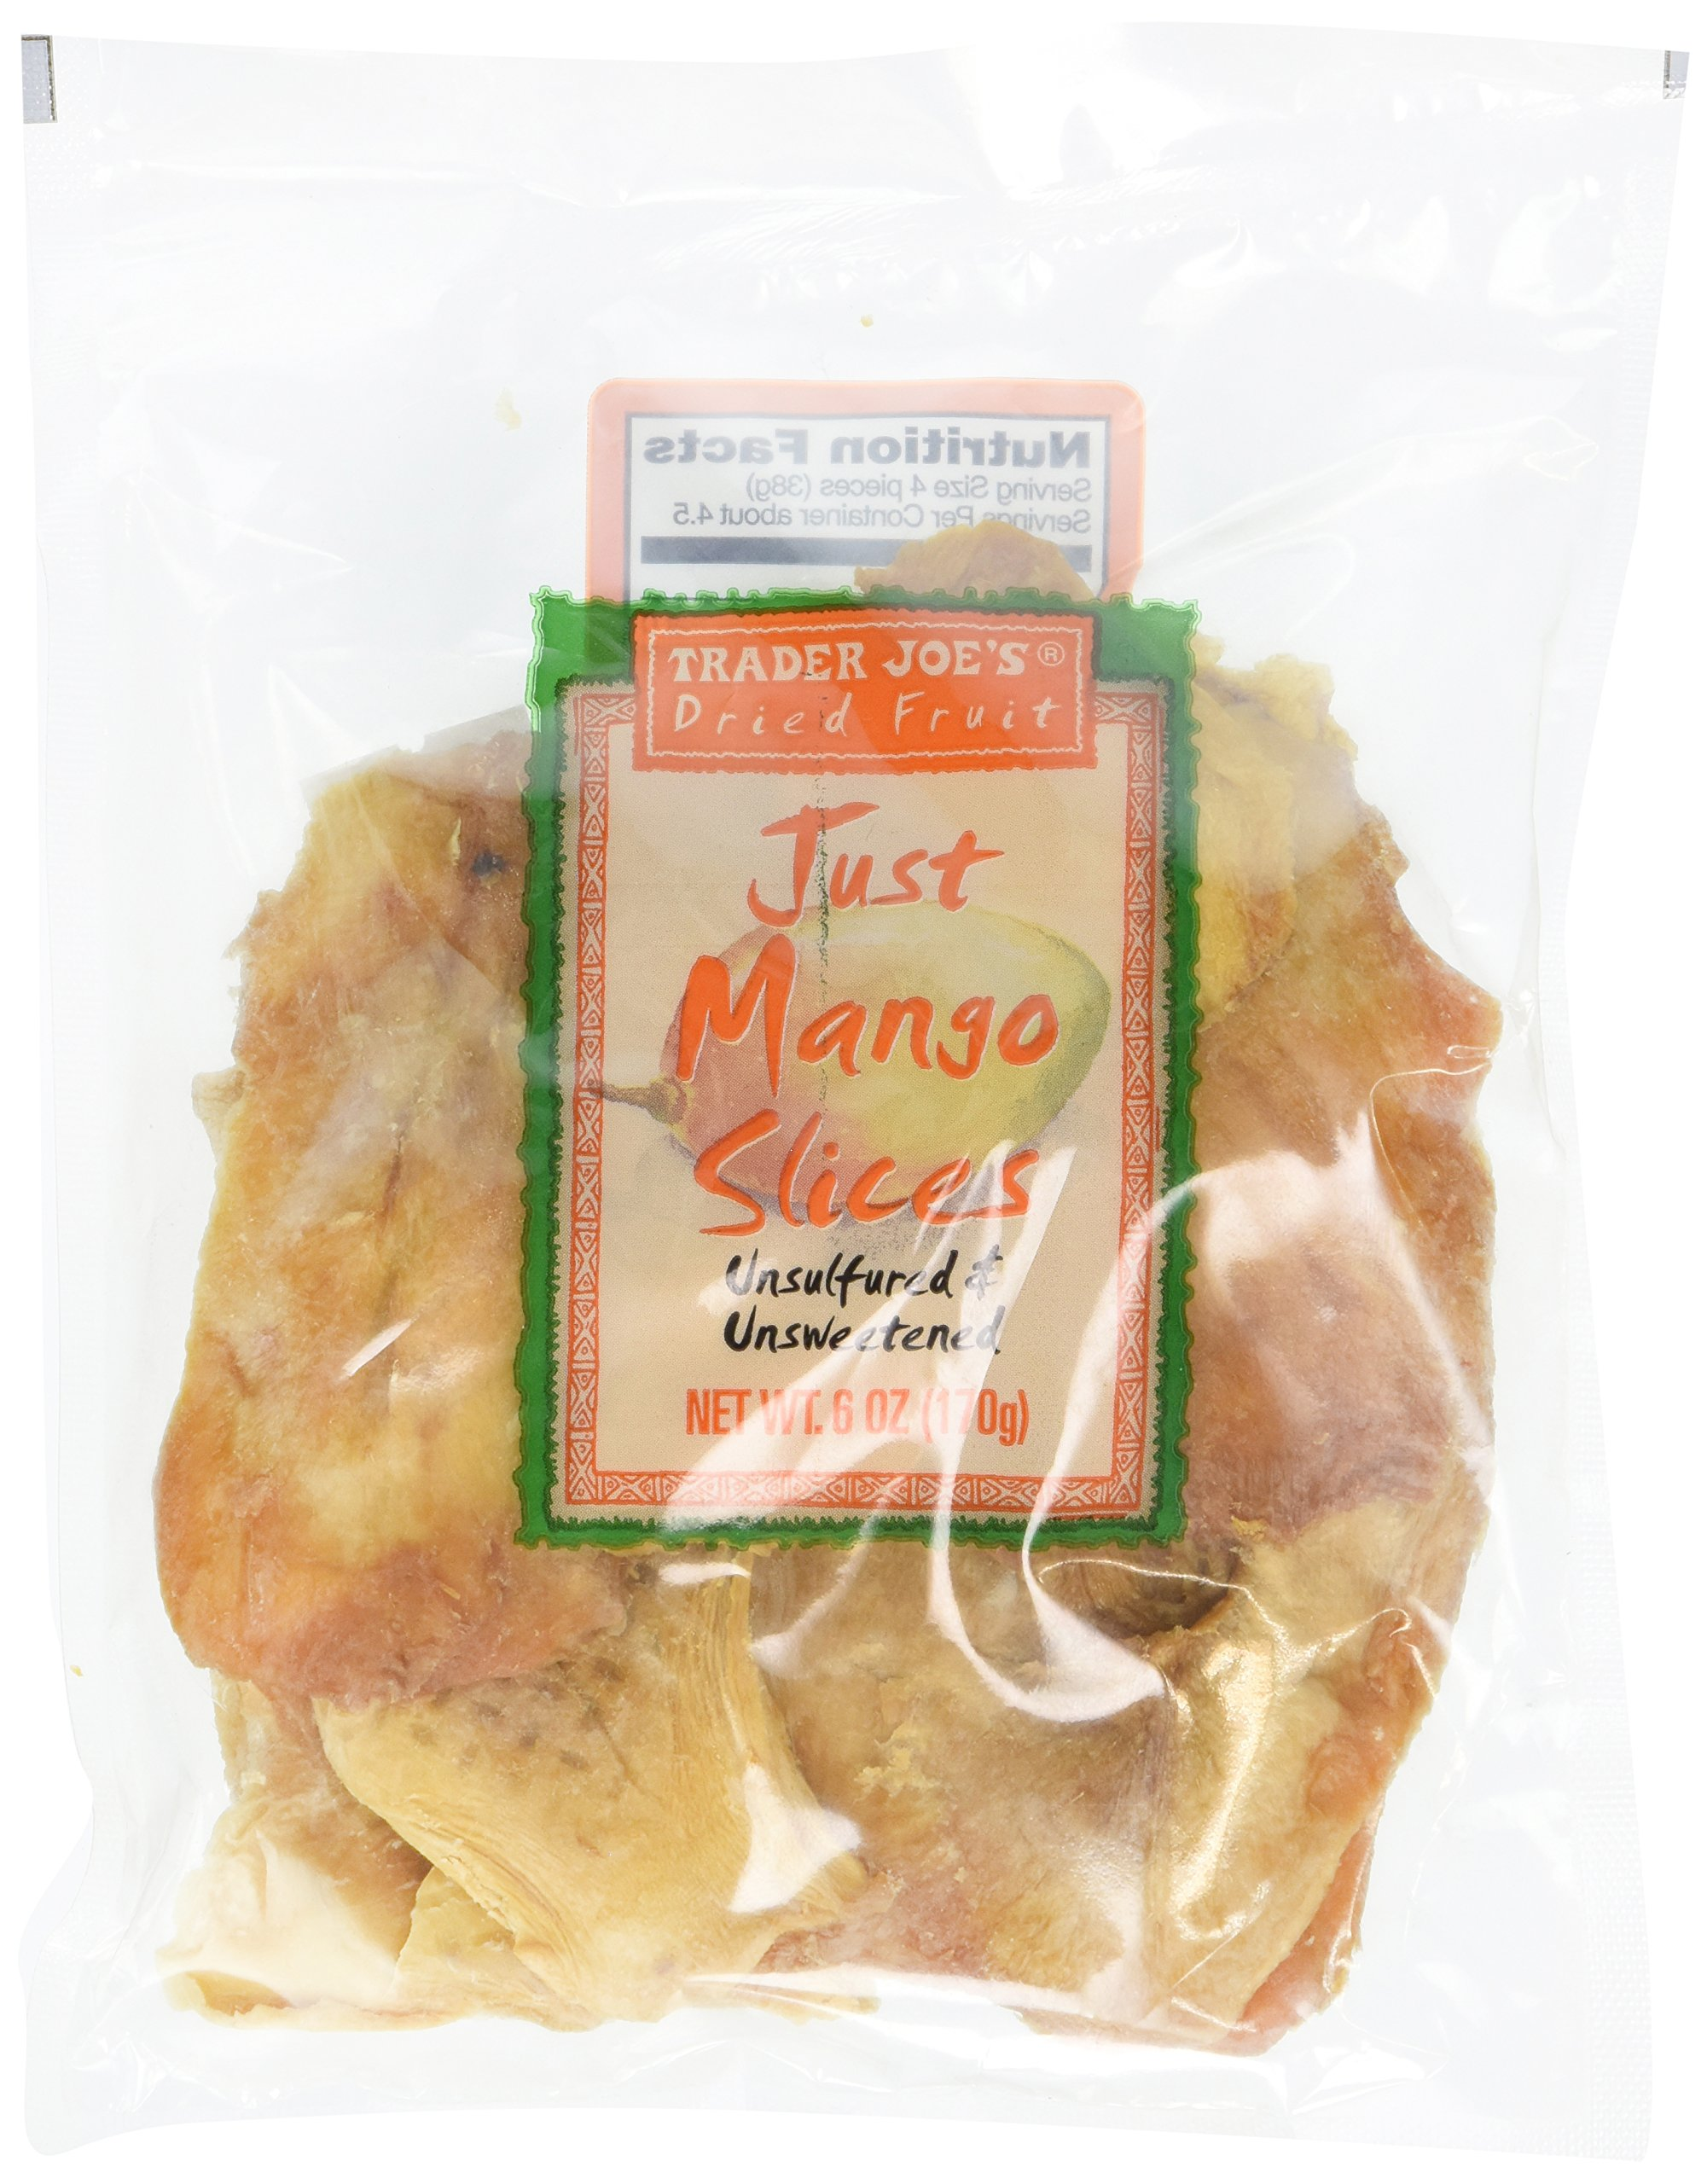 Trader Joe's Dried Fruit Just Mango Slices 6 ounces (Pack of 4) by Trader Joe's